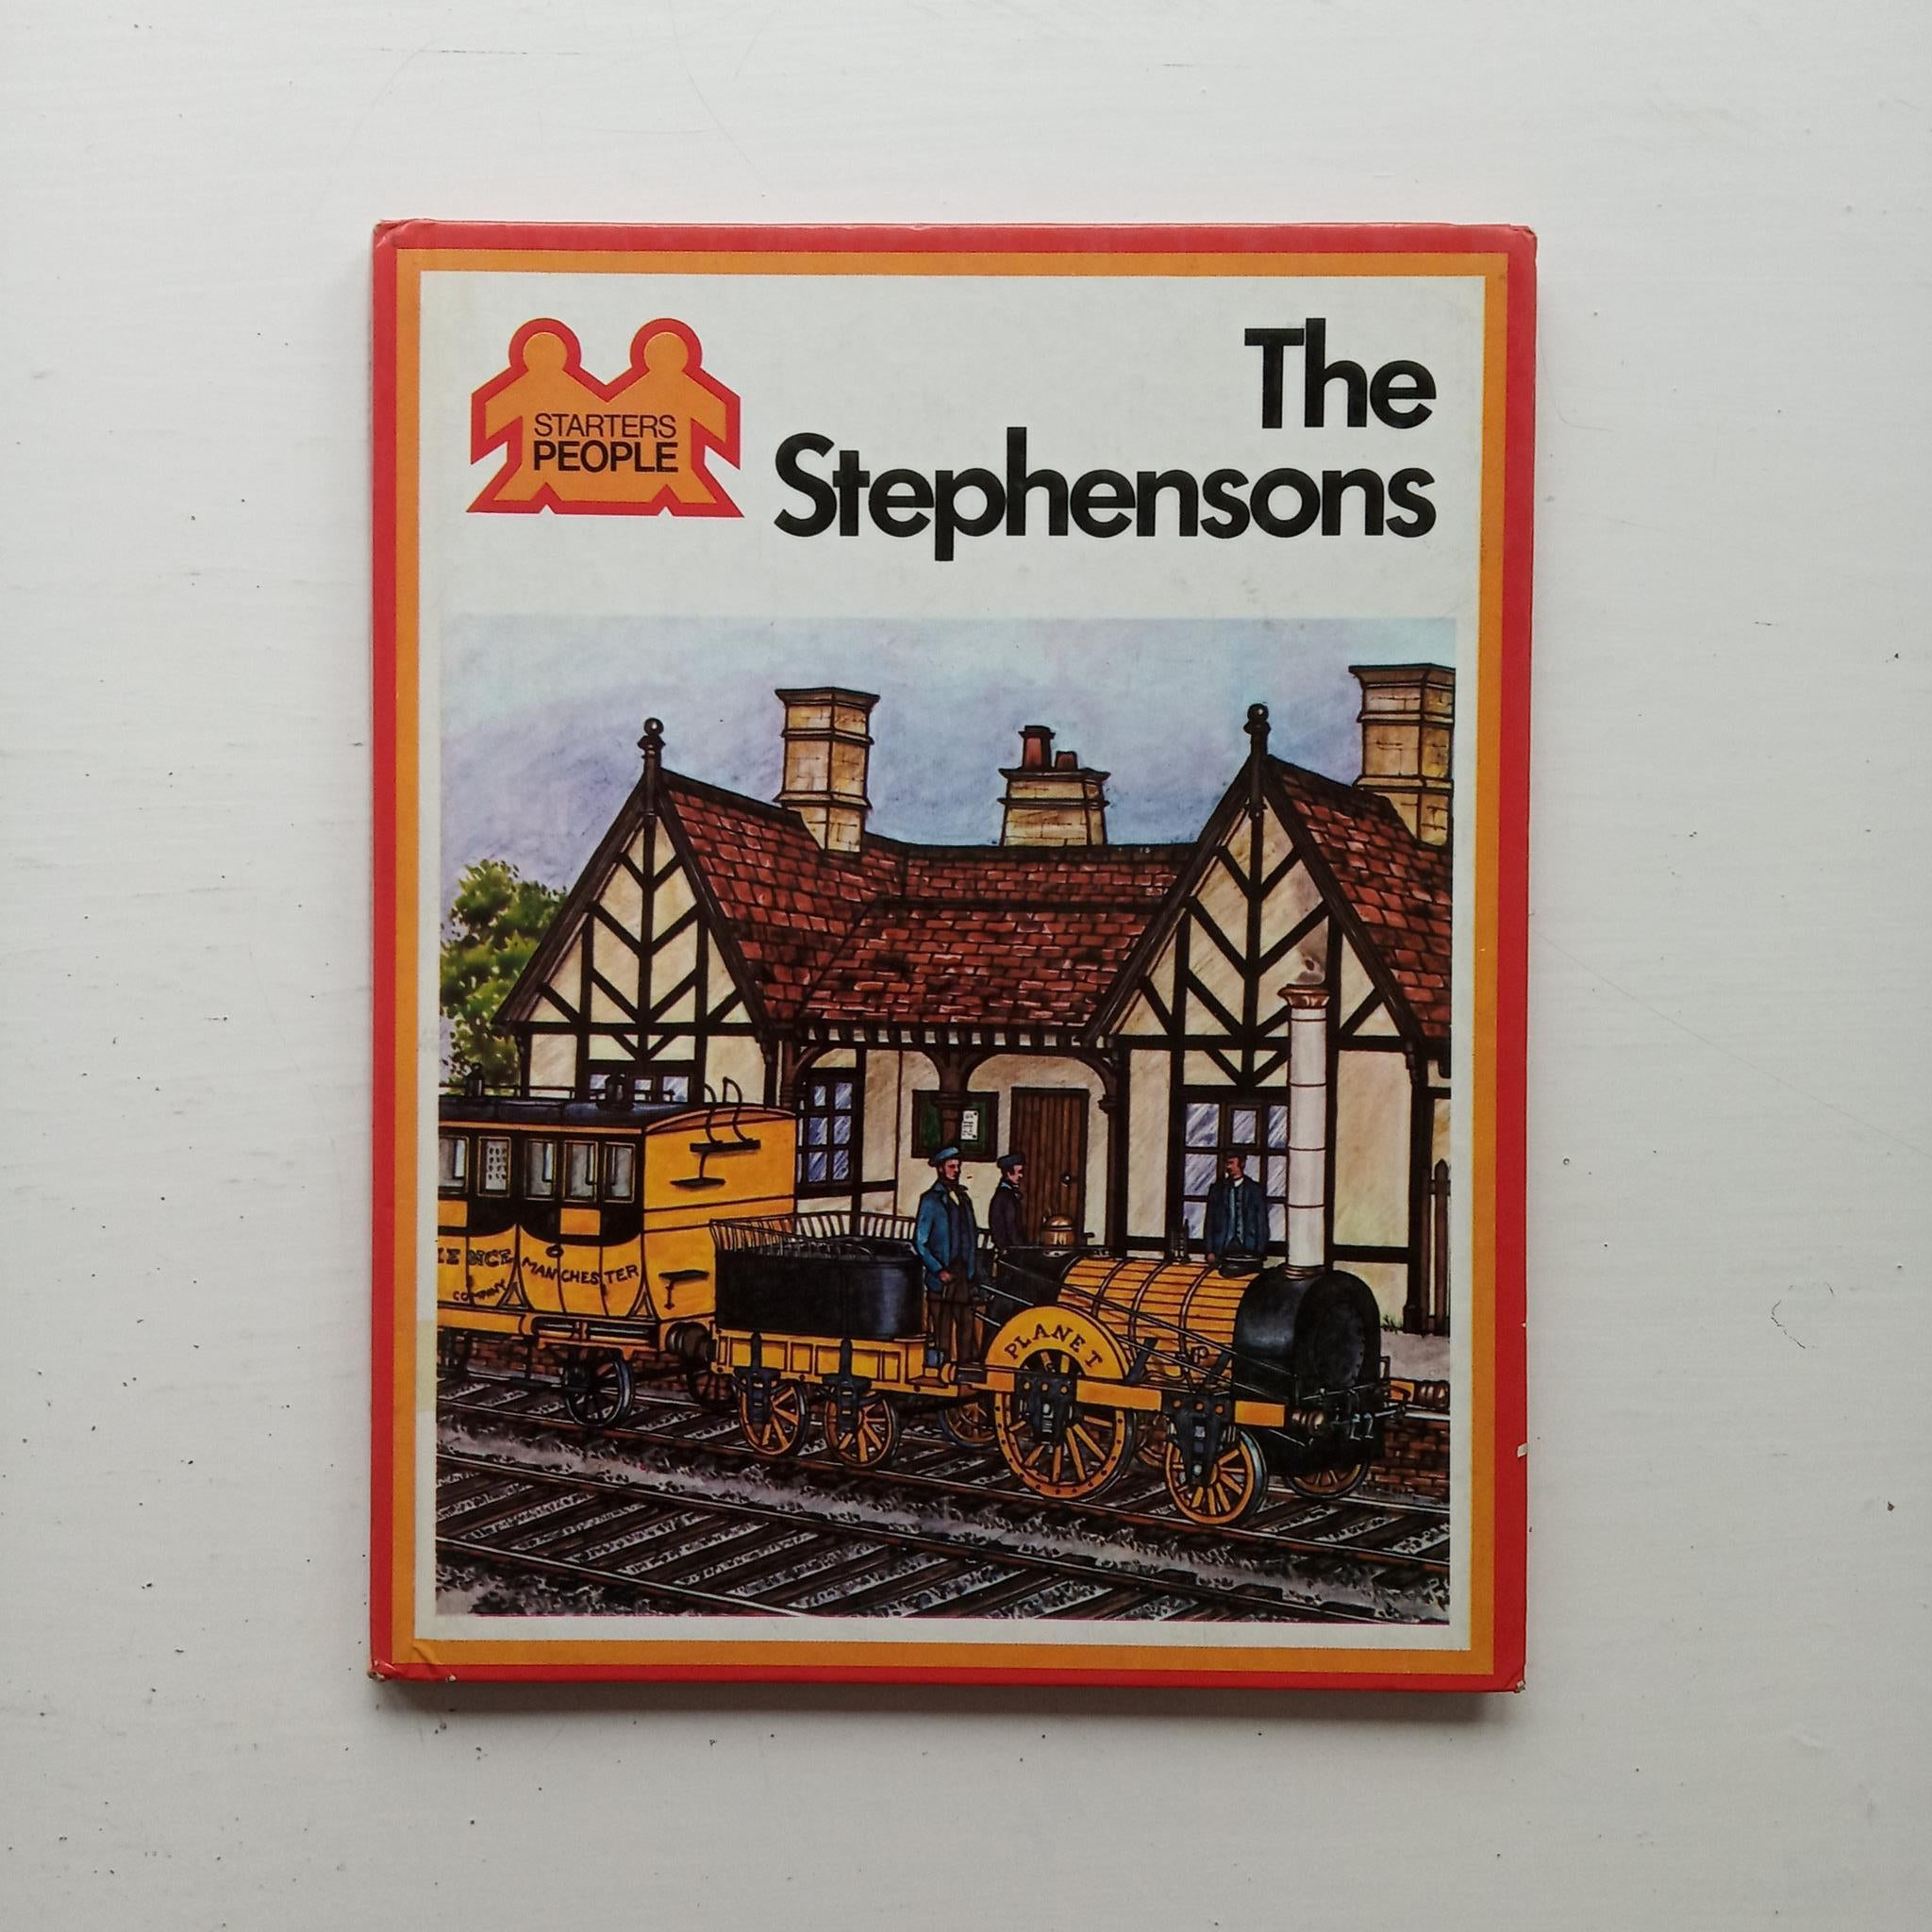 The Stephensons by Ruth Thomson